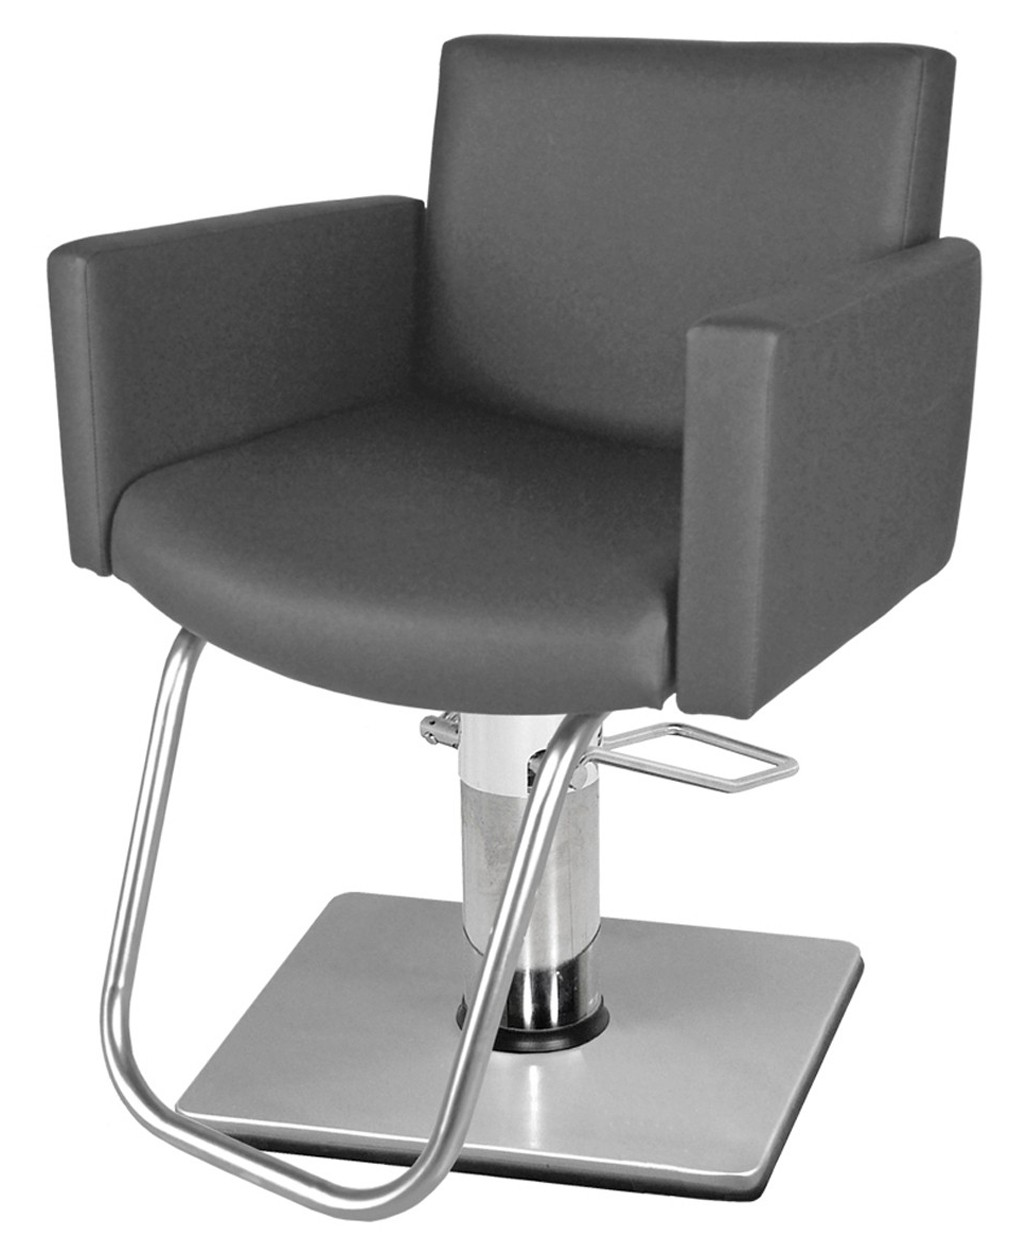 6900X  Cigno Styling Chair Square Base